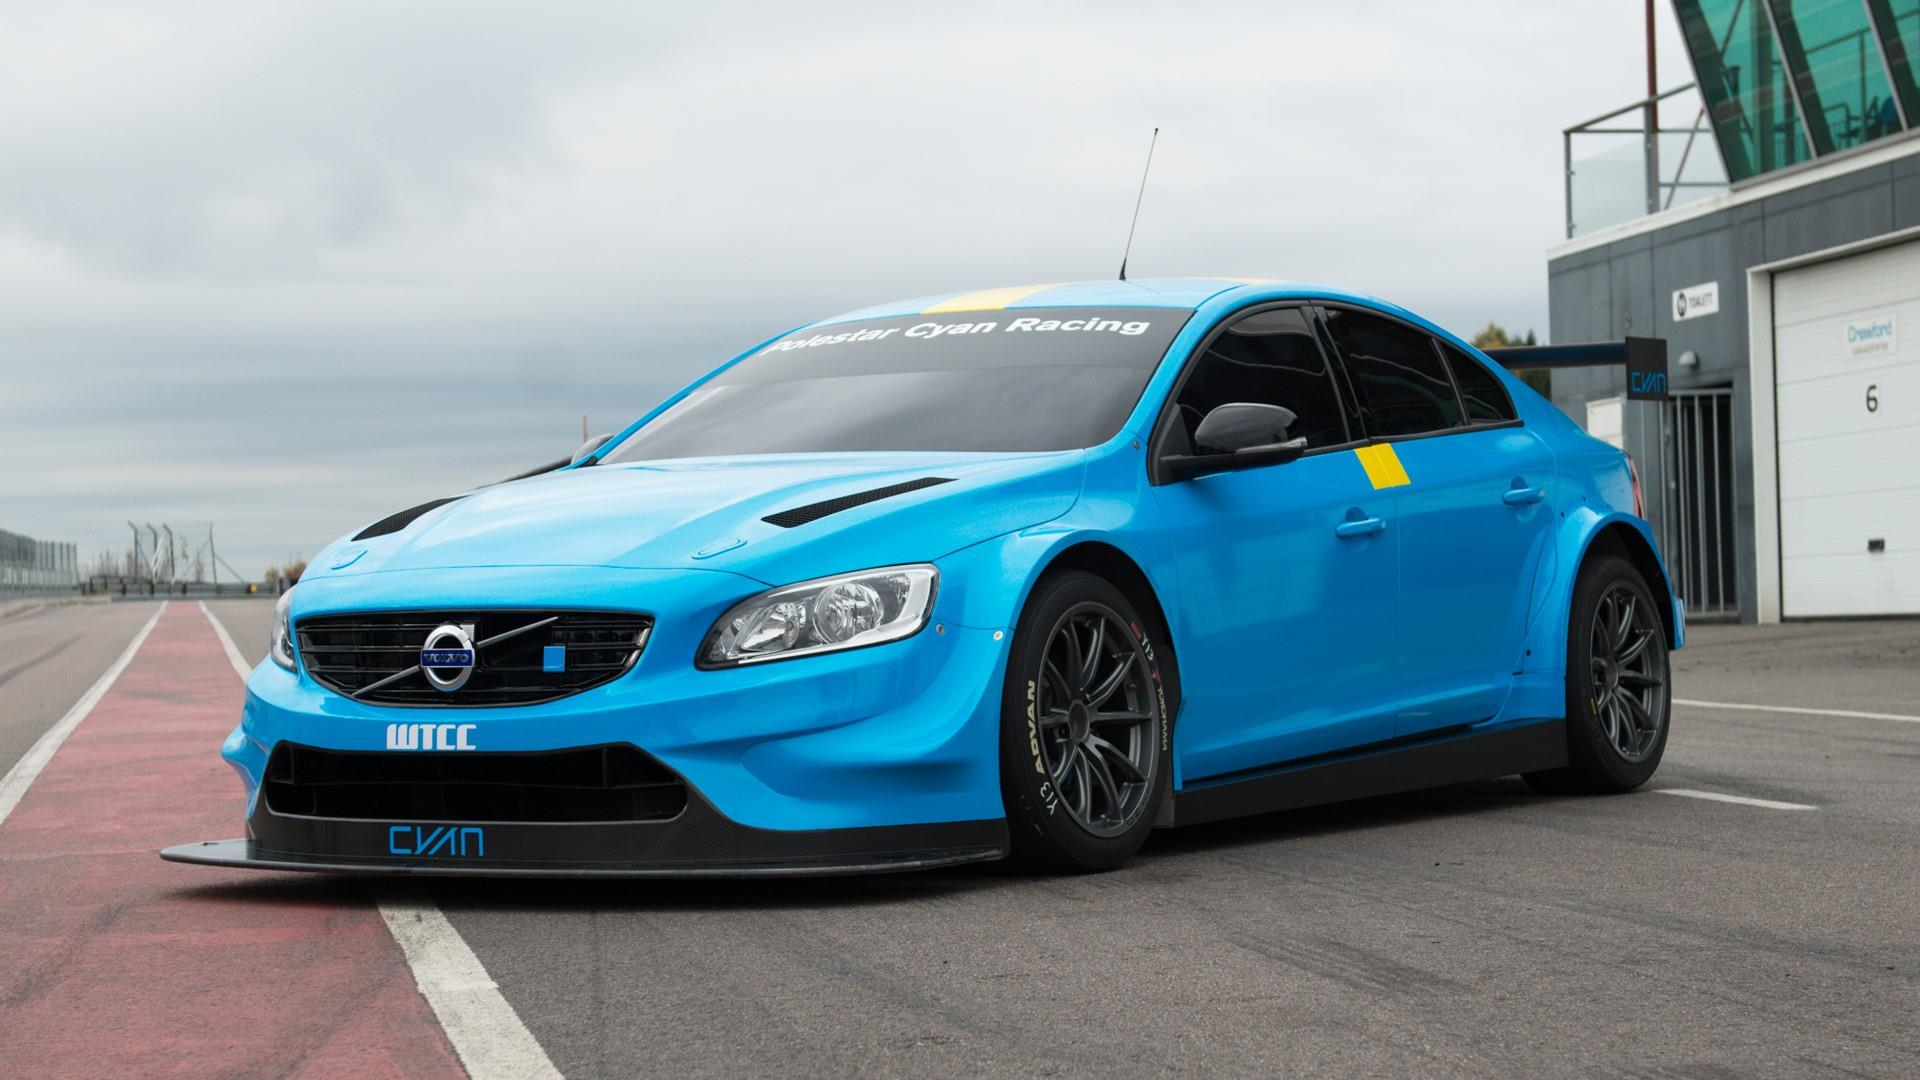 Future Cars 2018 Wallpapers 2016 Volvo S60 Polestar Tc1 Pictures News Research